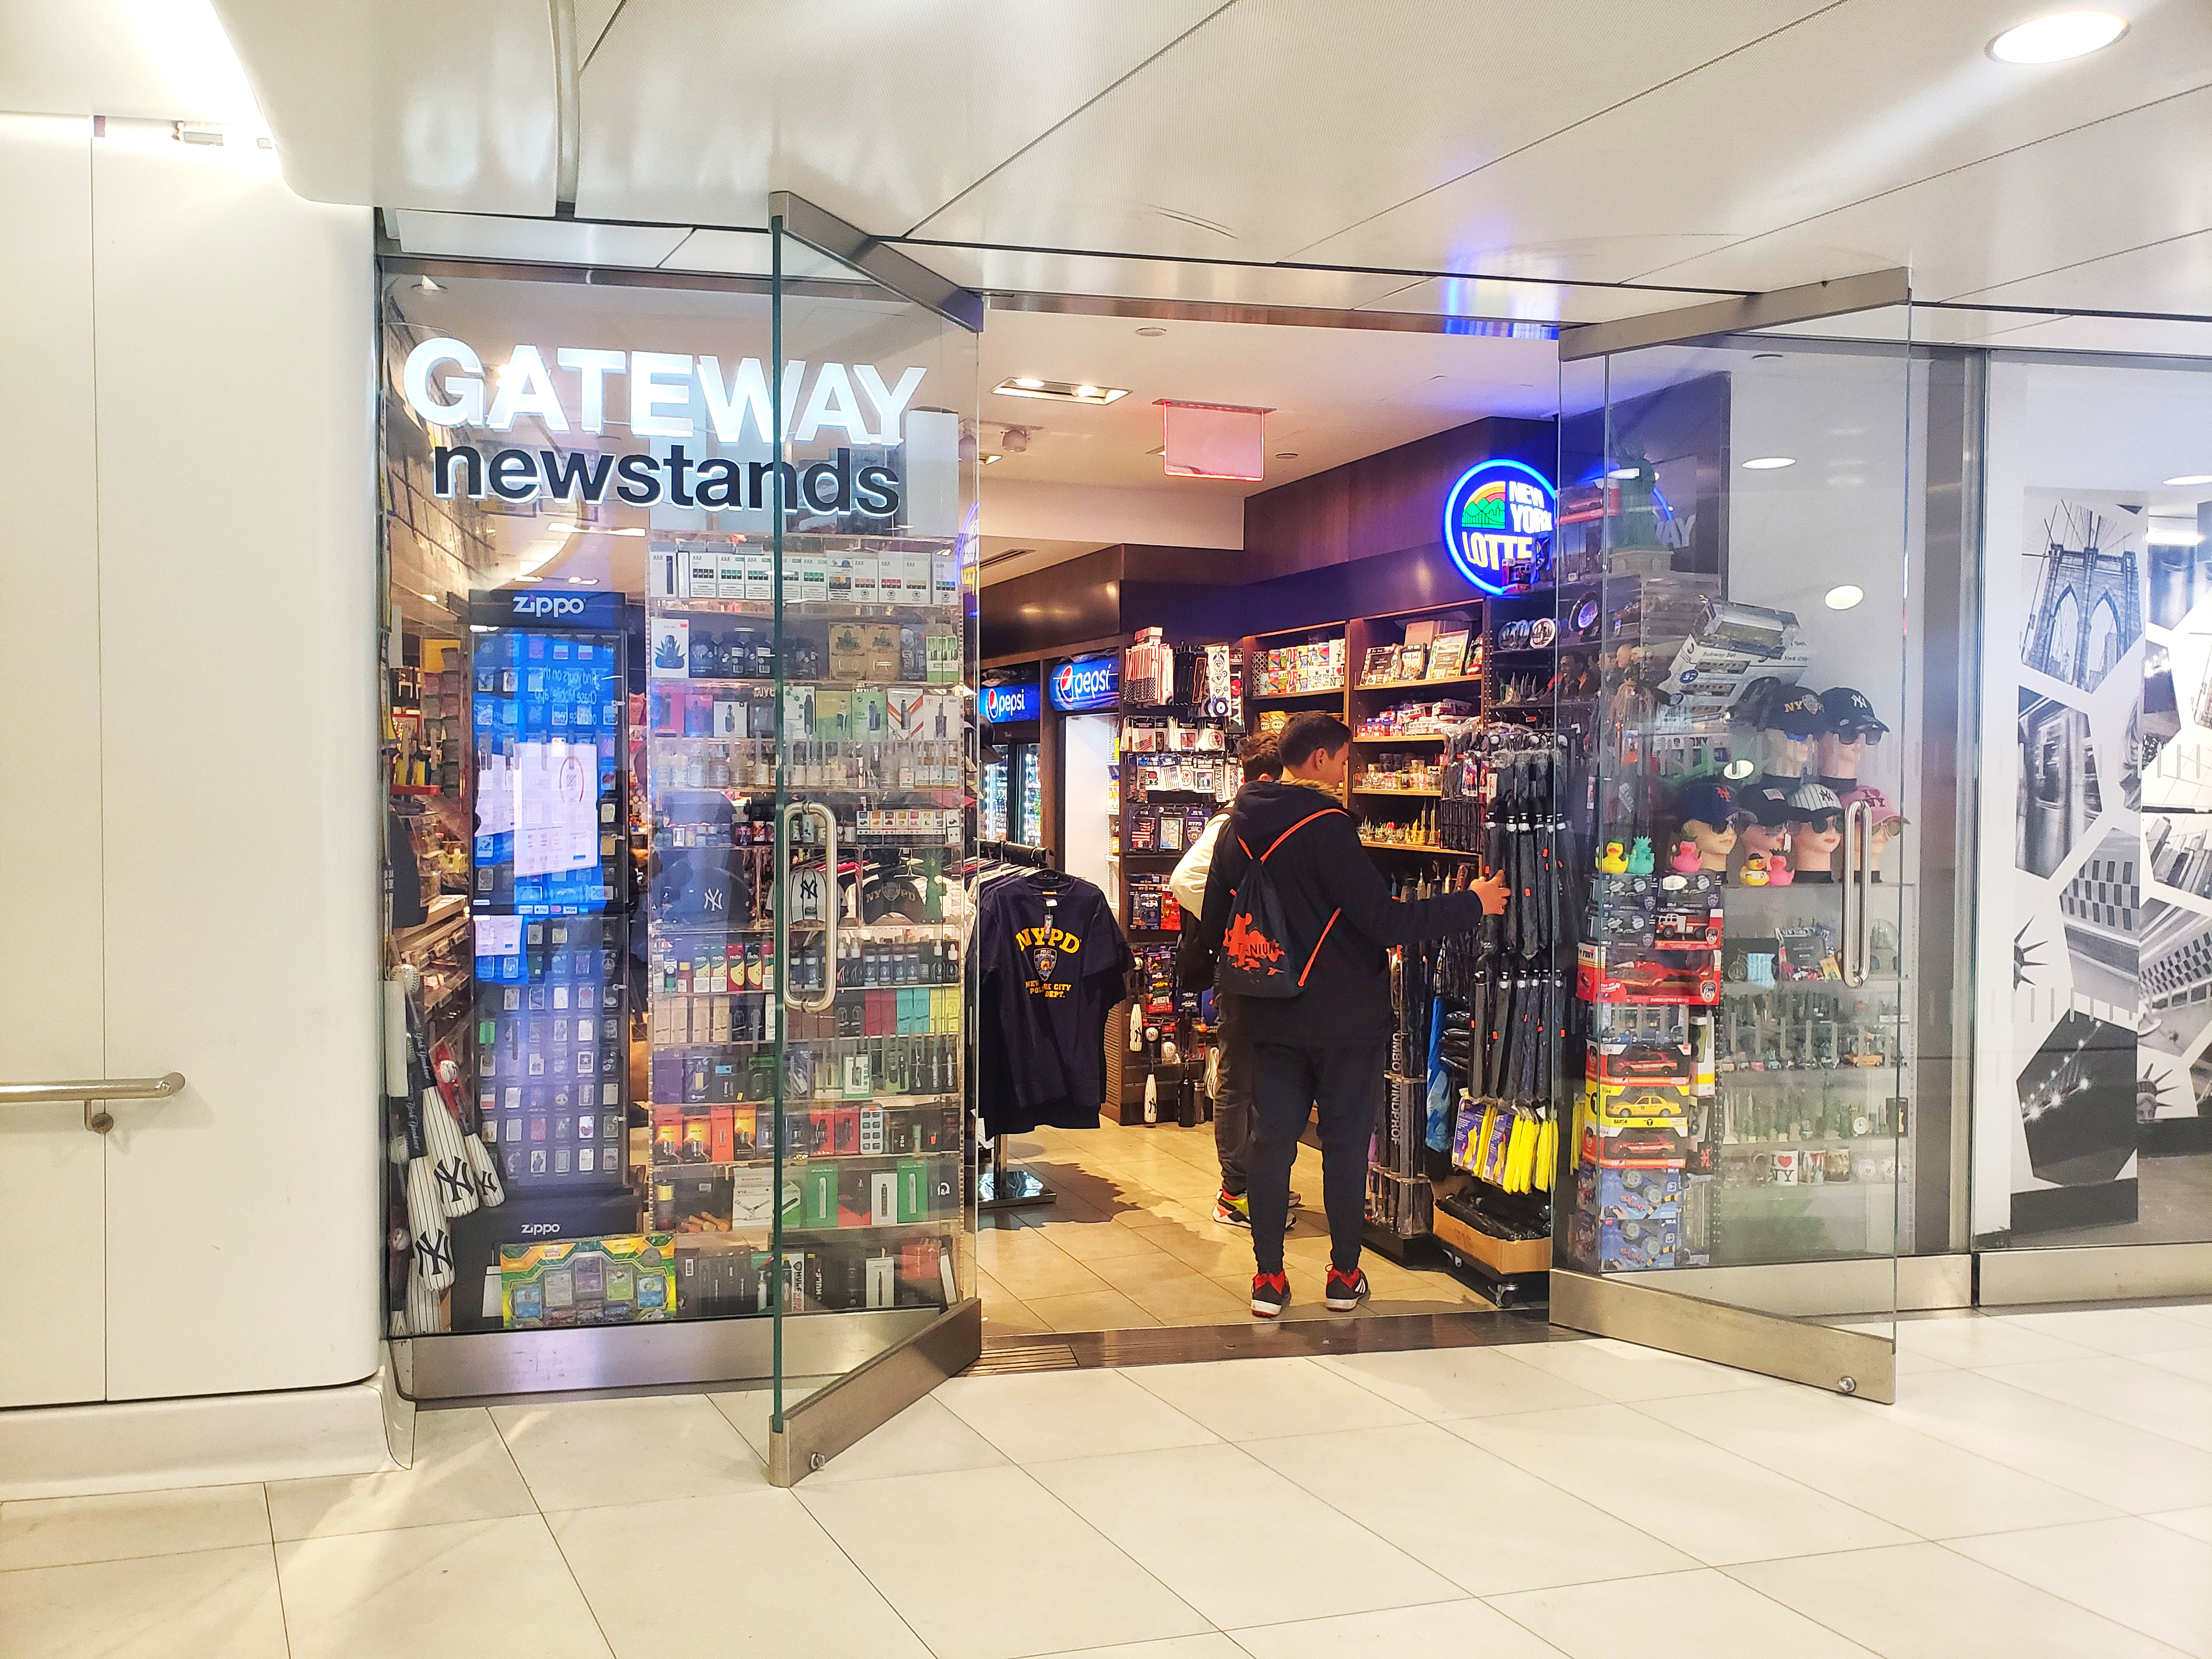 Gateway Newstands